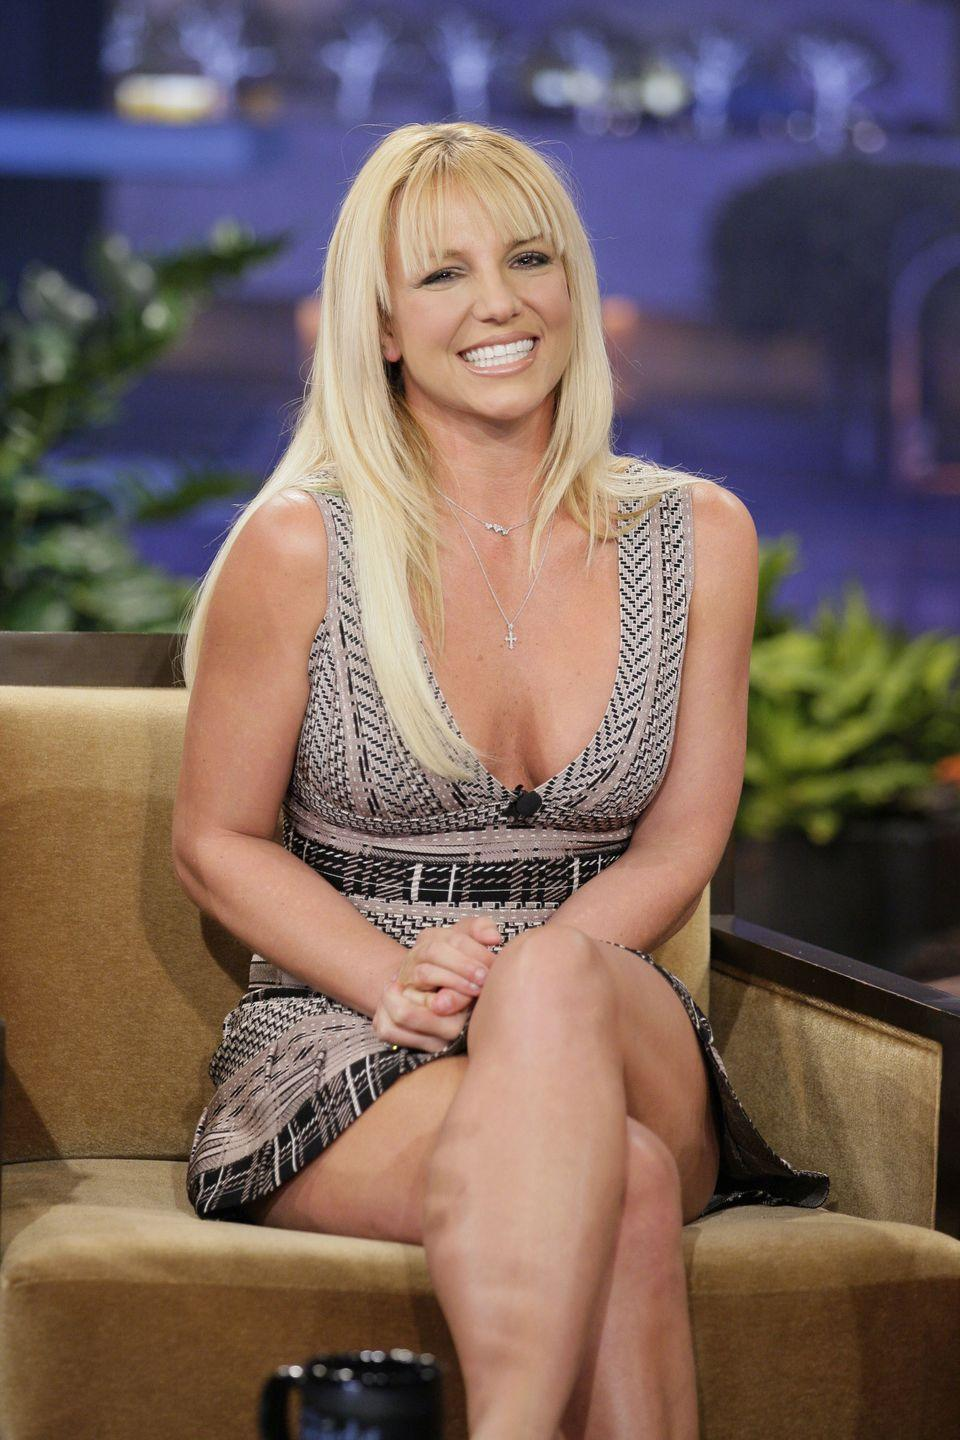 <p>A <em>Tonight Show With Jay Leno </em>appearance called for a new blunt bang cut.</p>